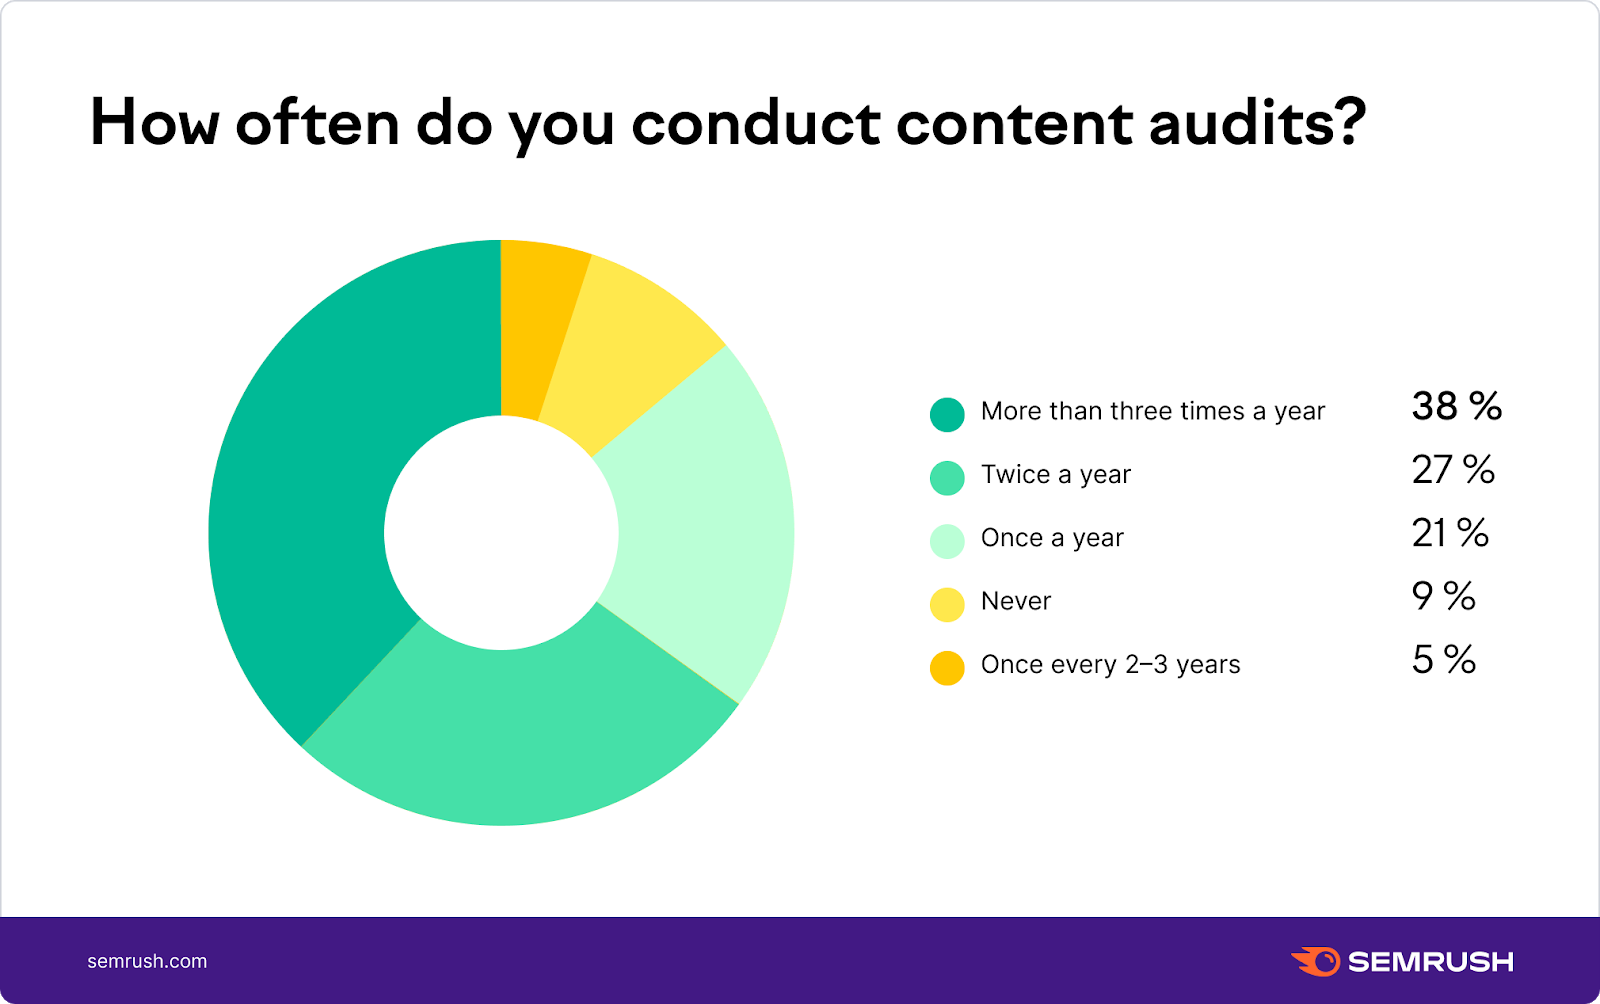 How often do you conduct content audits?